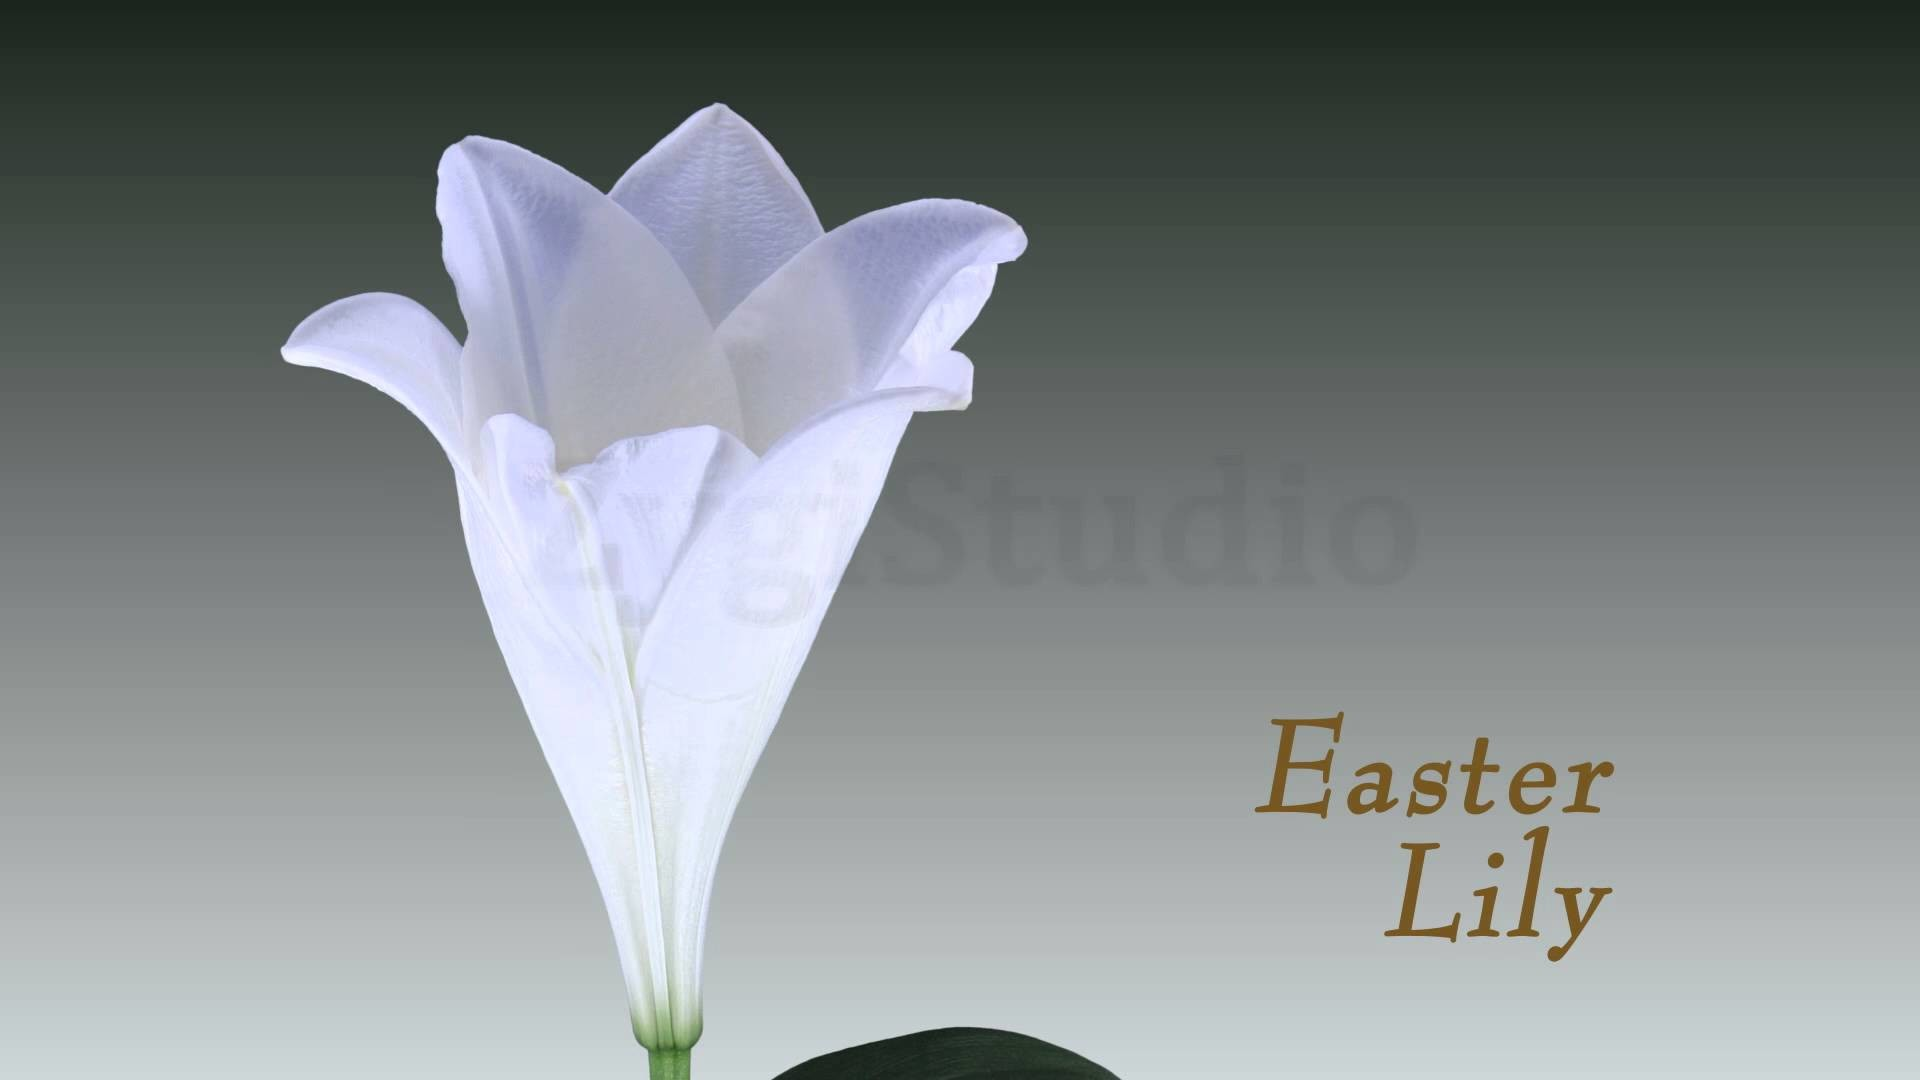 Time-lapse of Opening White Easter Lily.